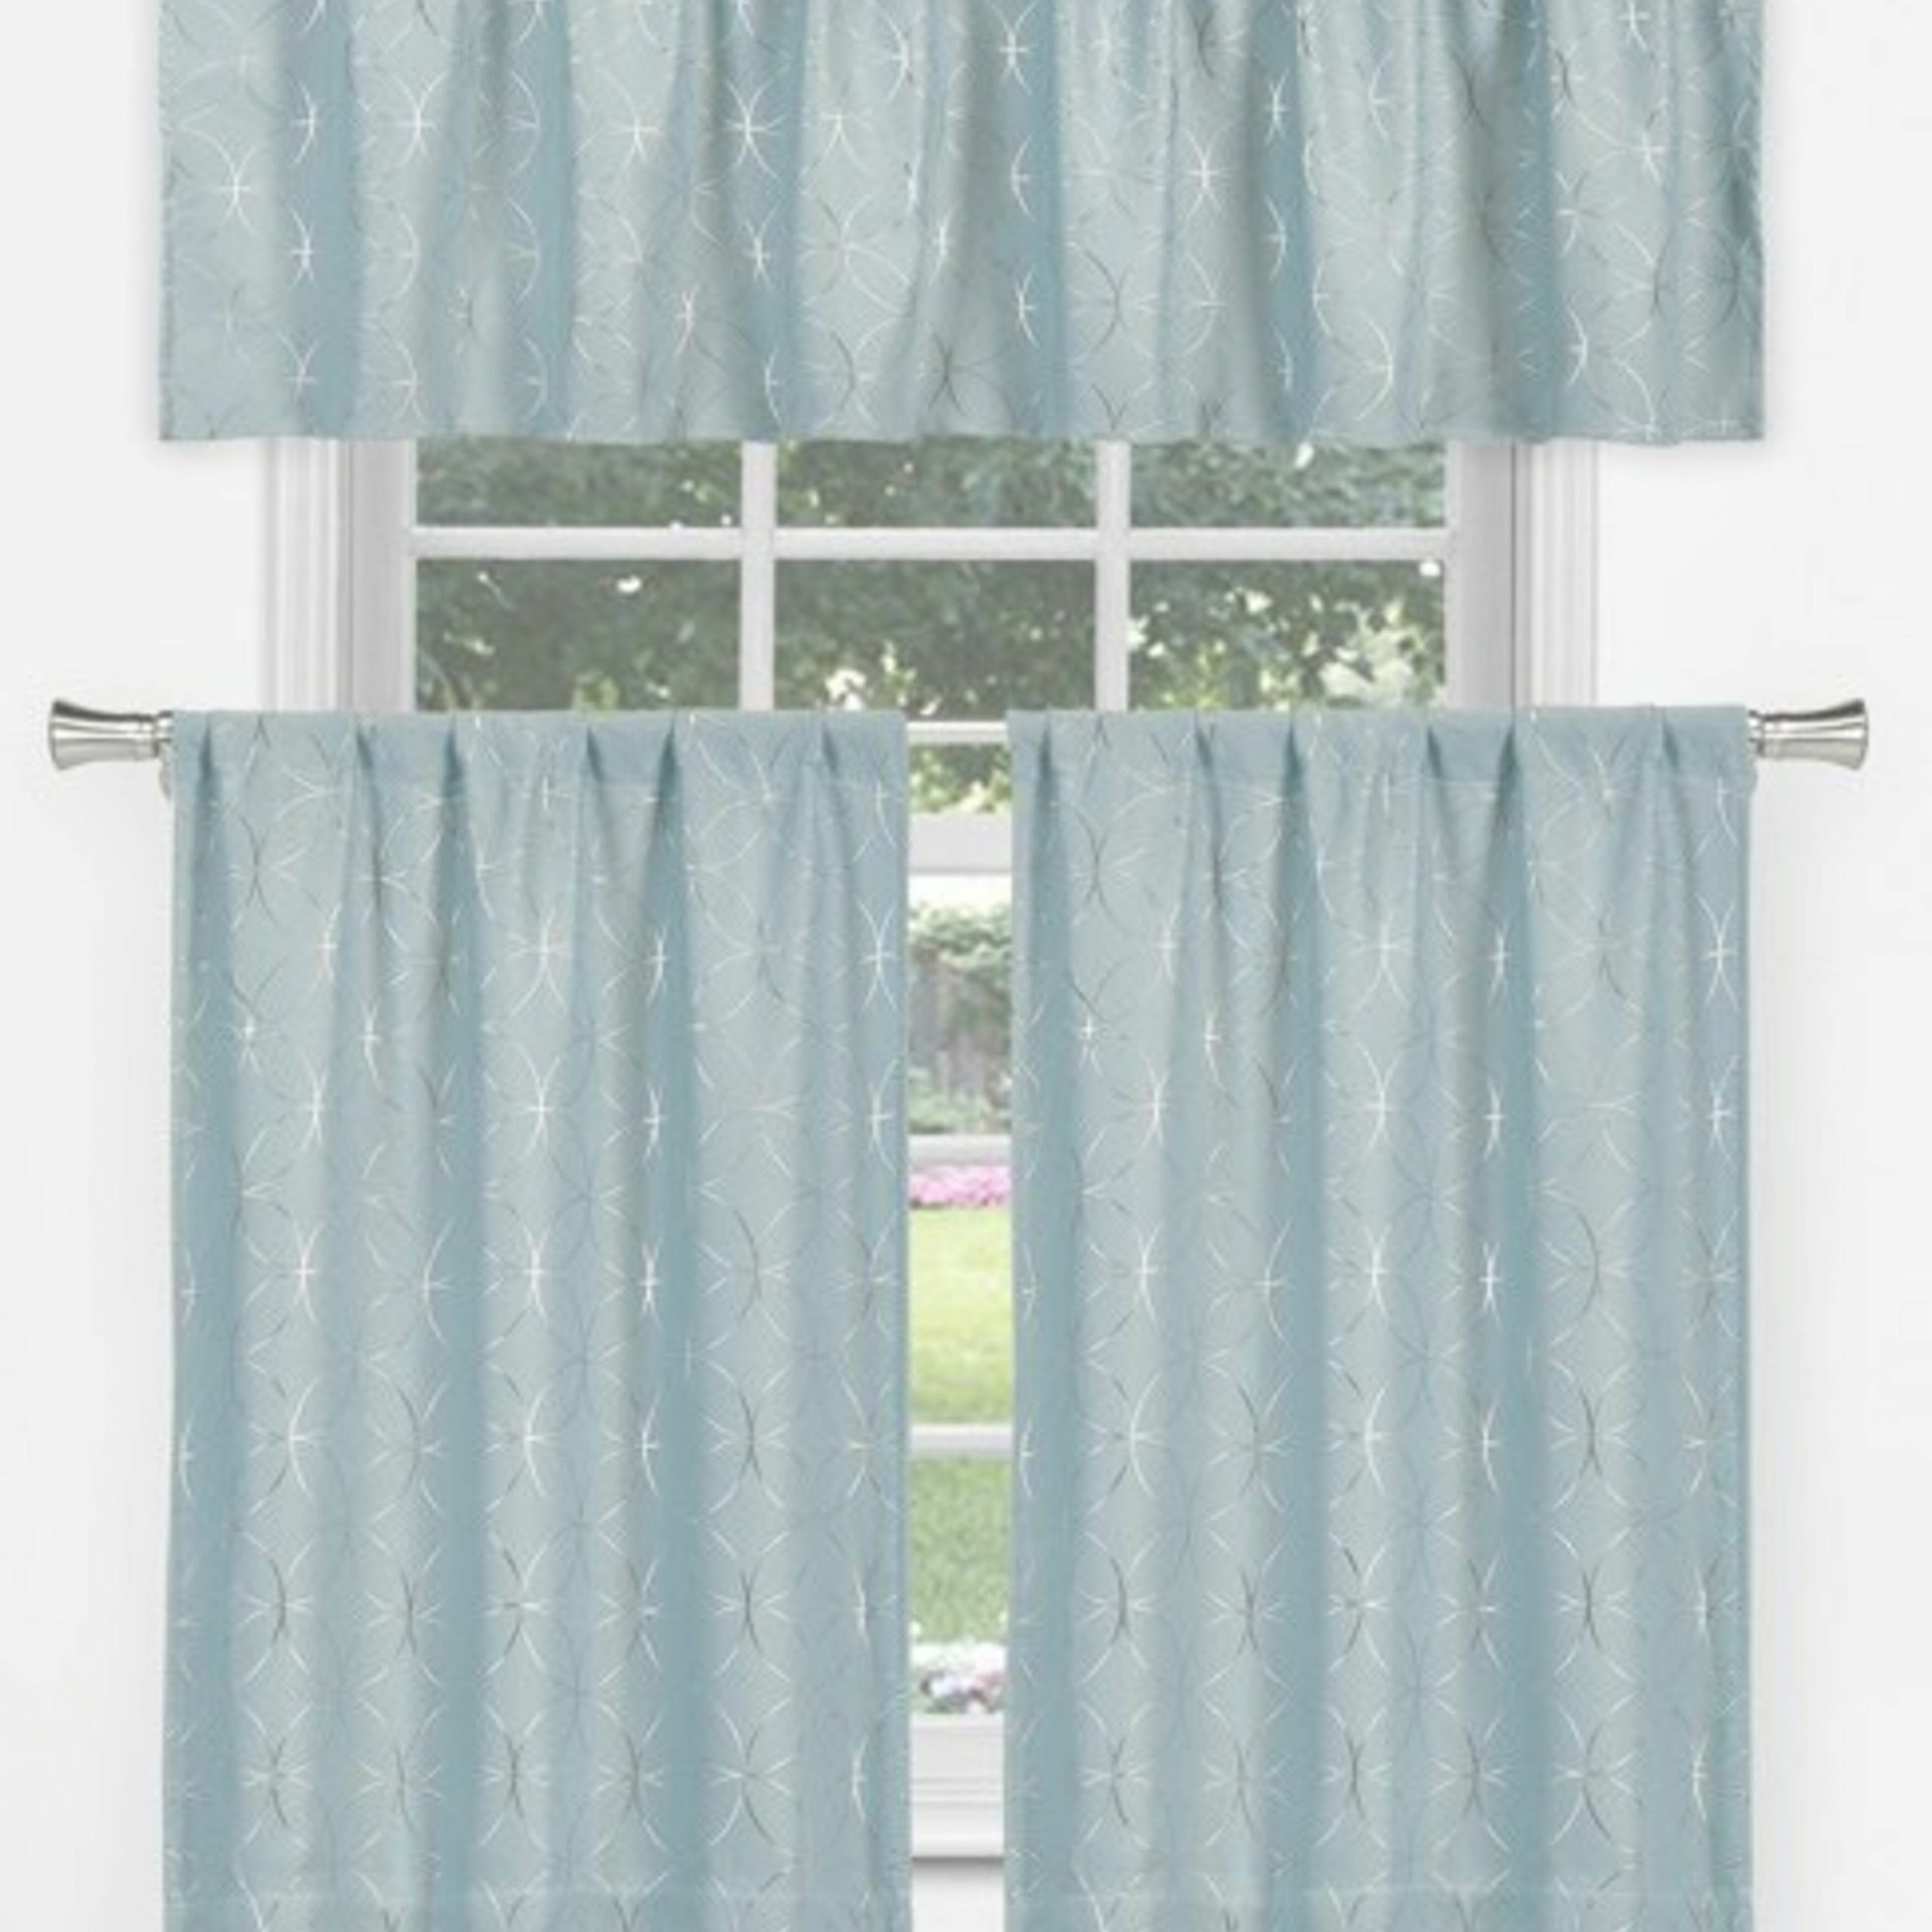 Spring Daisy Tiered Curtain 3 Piece Sets Throughout Most Recent Messier Tier 3 Piece Curtain Set (View 16 of 20)